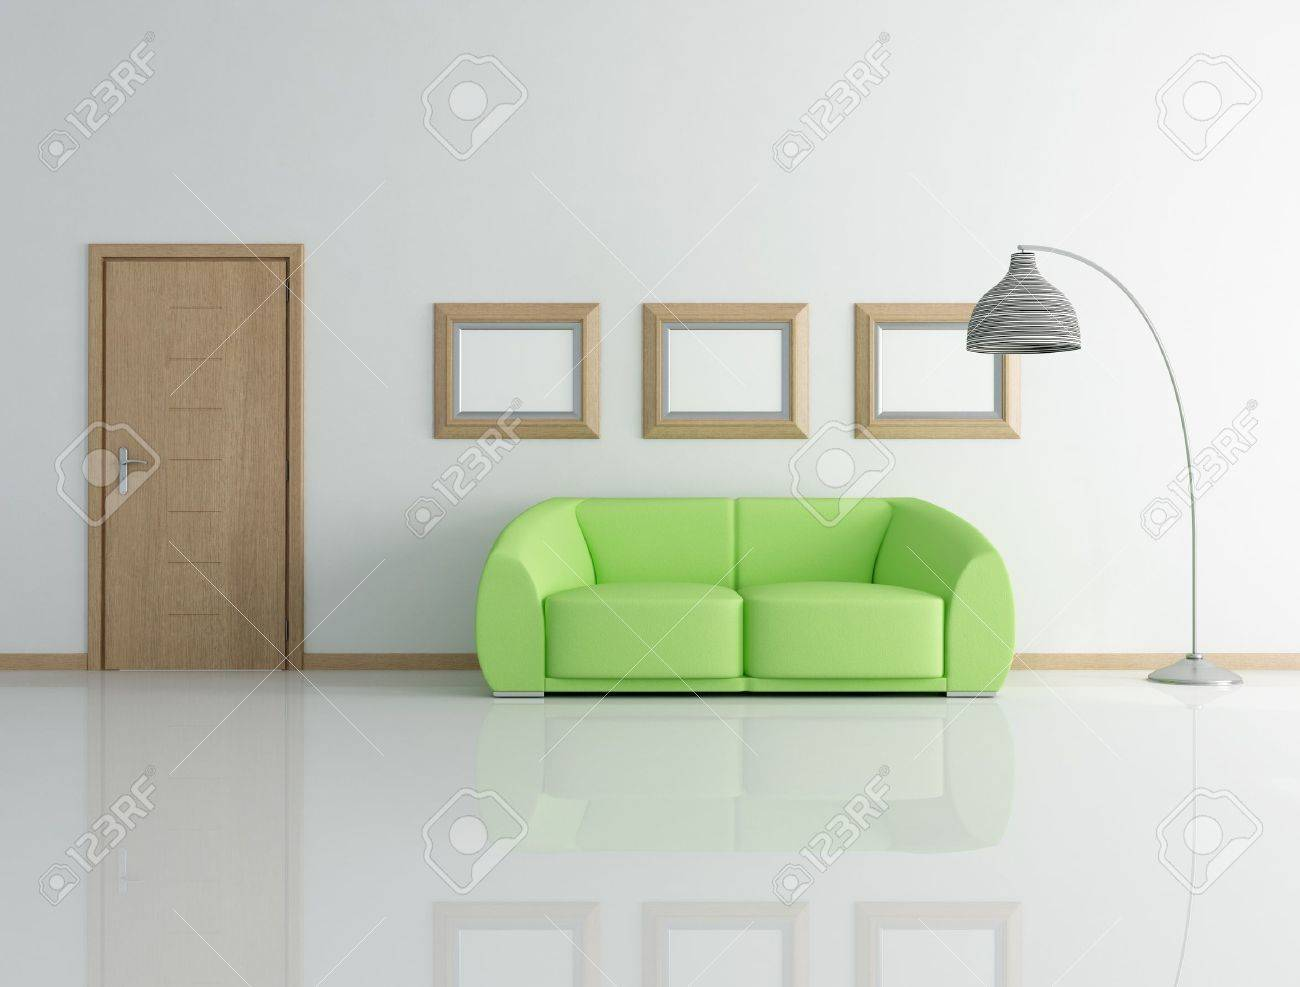 green couch in a modern interior with wooden door - rendering Stock Photo - 7591098